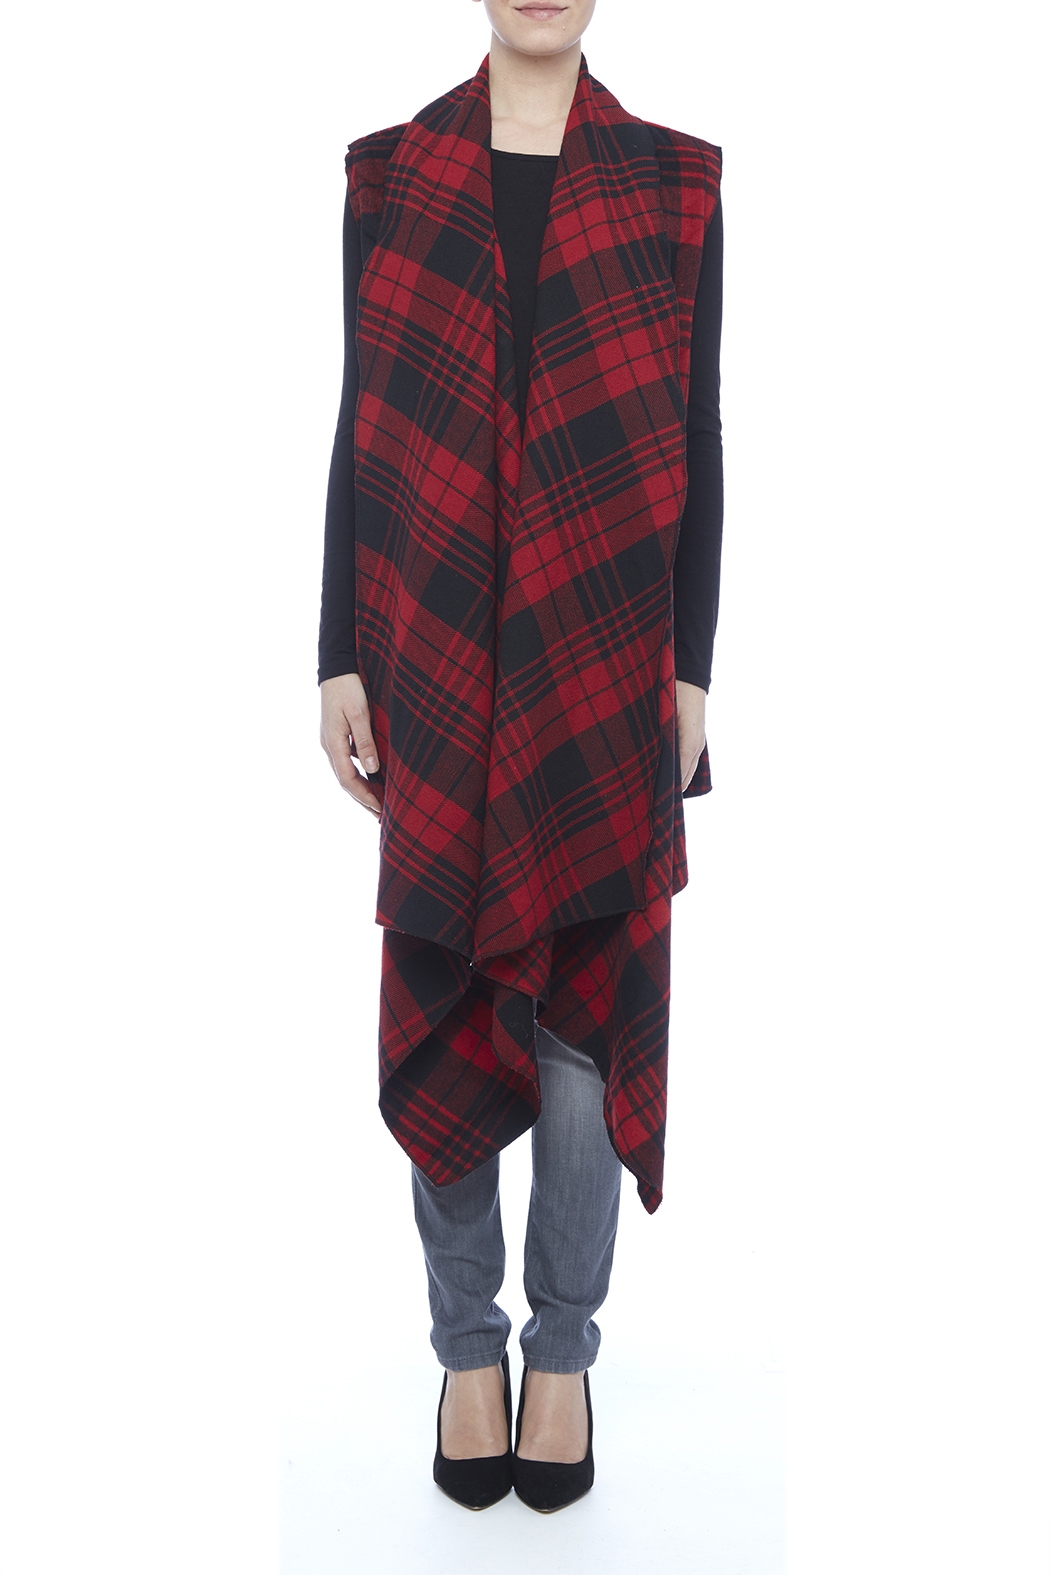 Renee C. Red Plaid Vest - Front Cropped Image